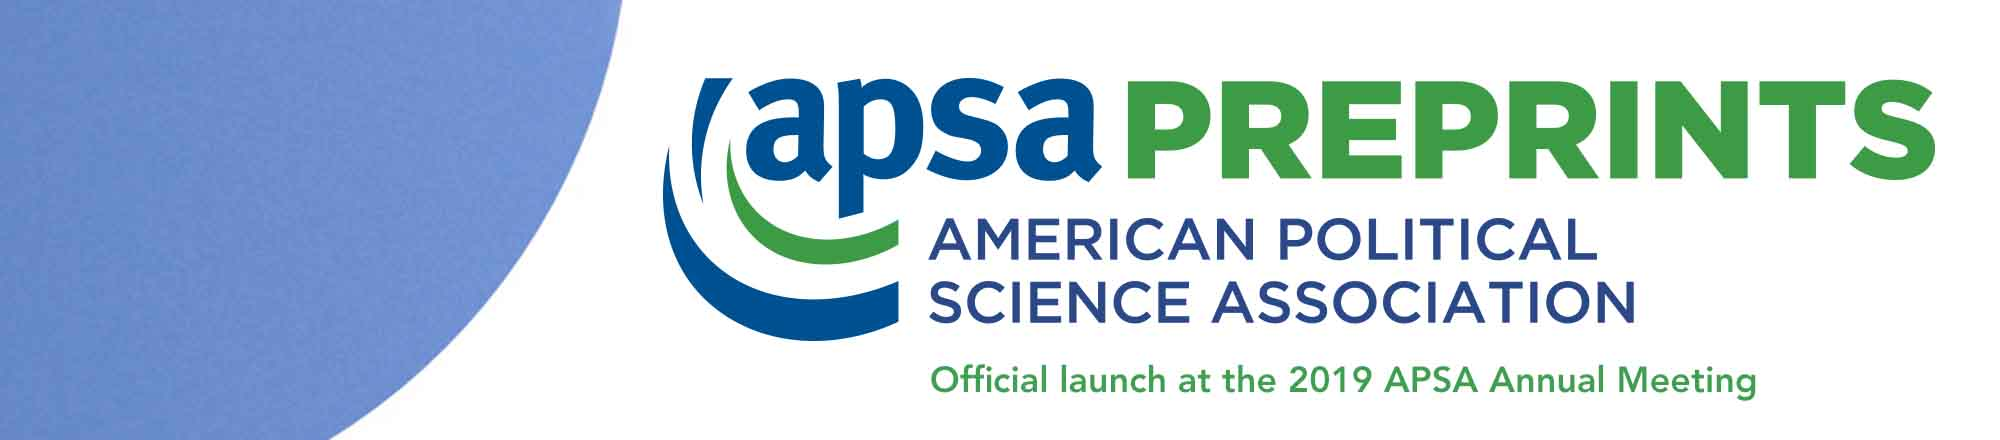 APSA Preprints Hero banner